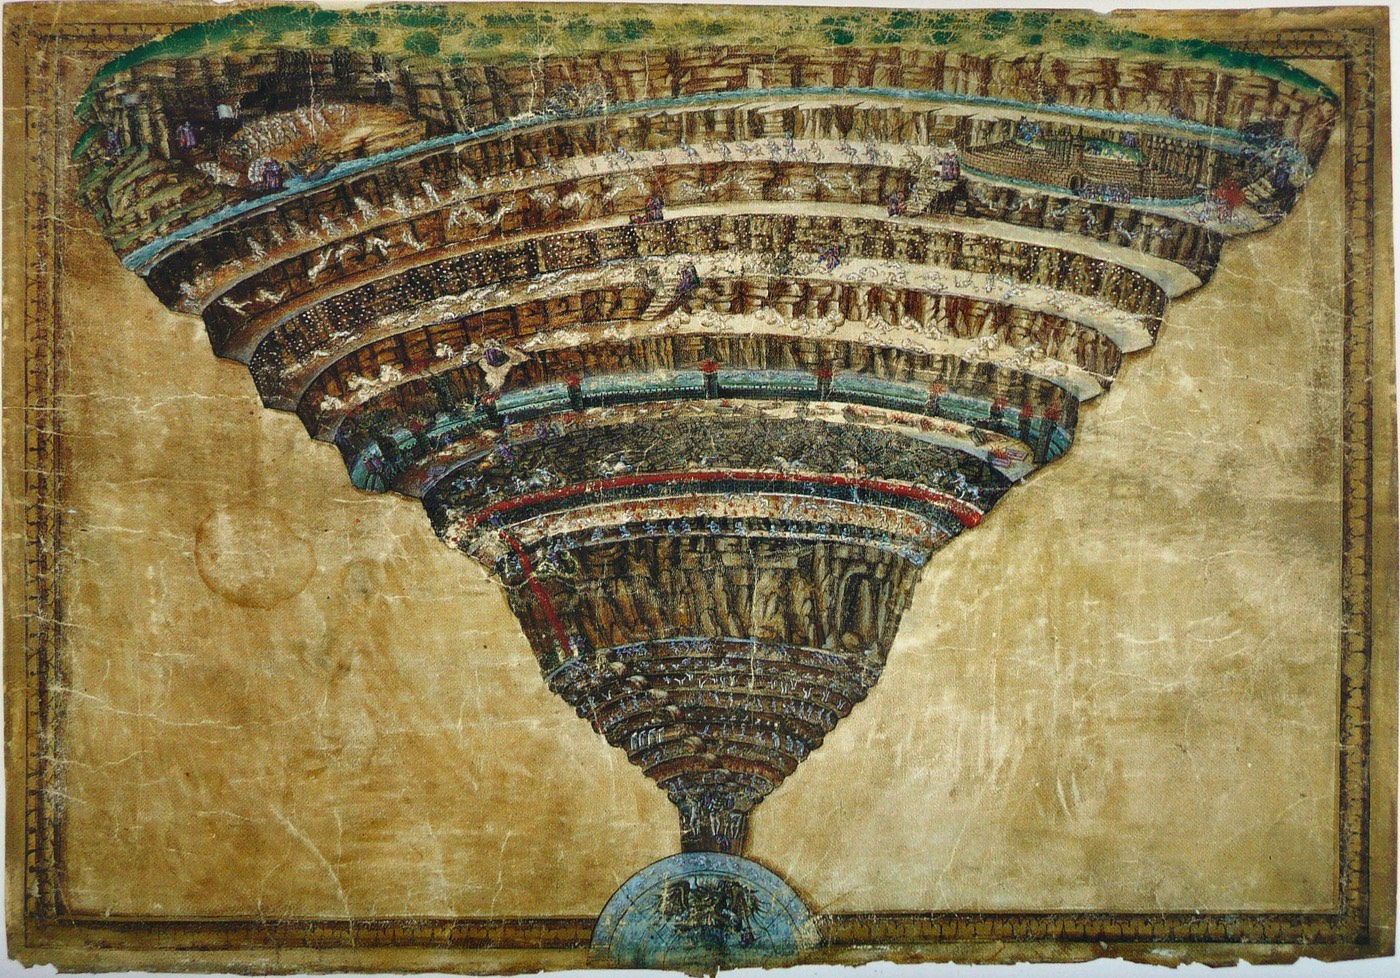 MAPA DO INFERNO DE DANTE, BOTICELLI, 1480-90